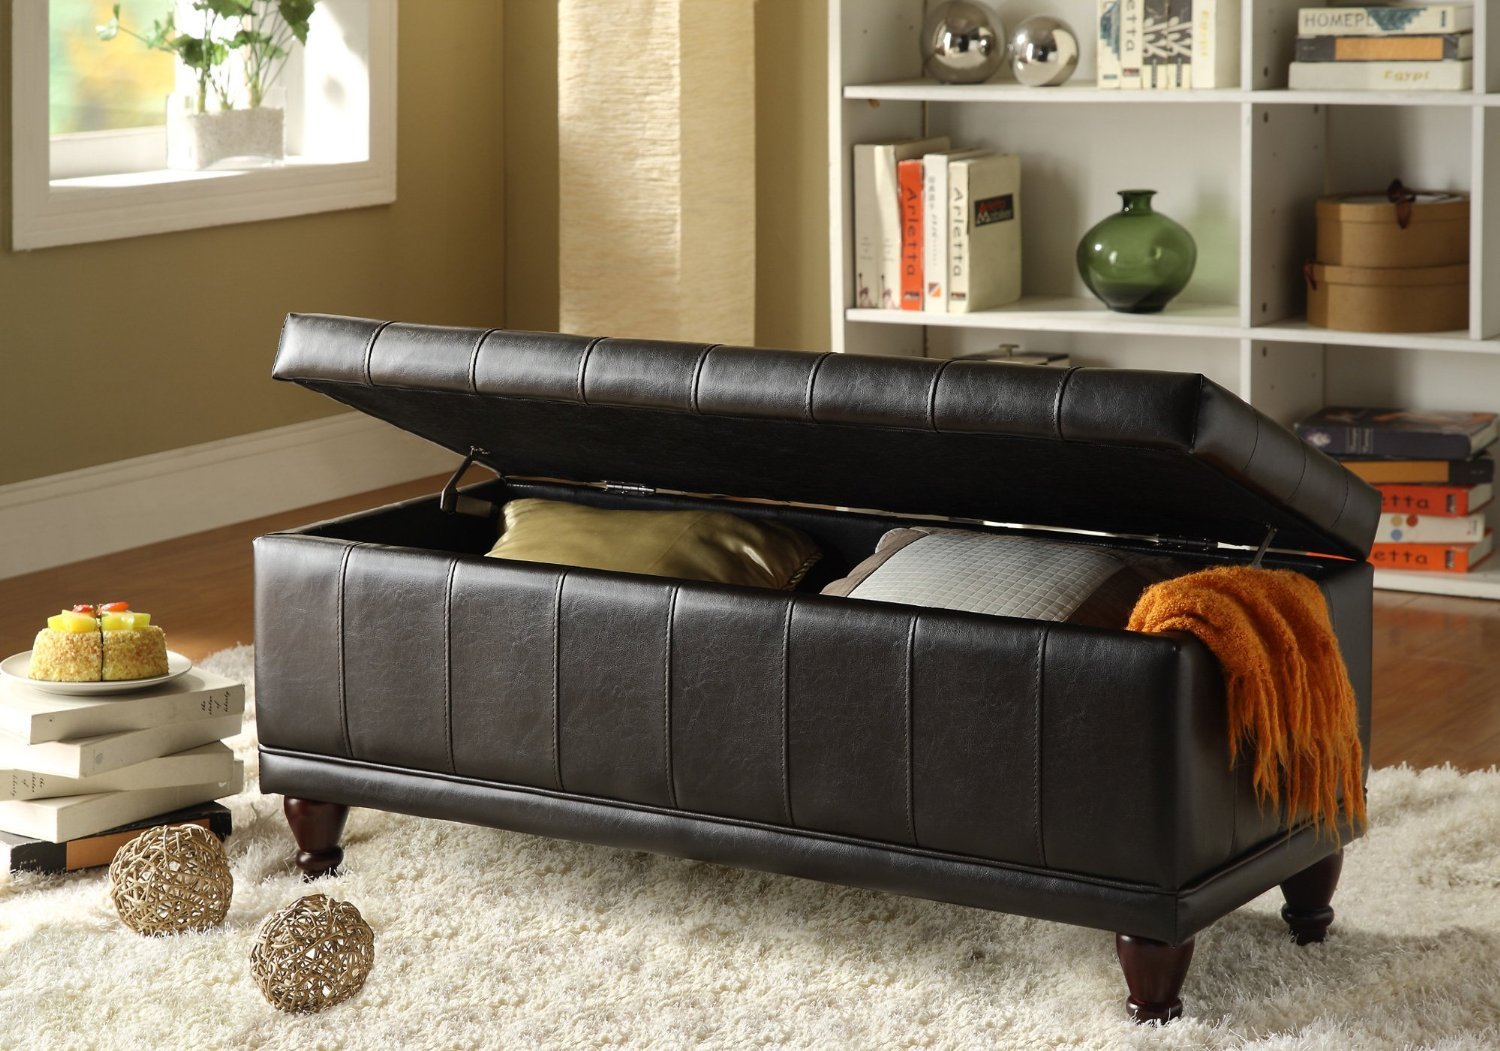 Leather Storage Bench Bedroom Storage Bench For Bedroom Ikea Full Image For Bedroom Benches